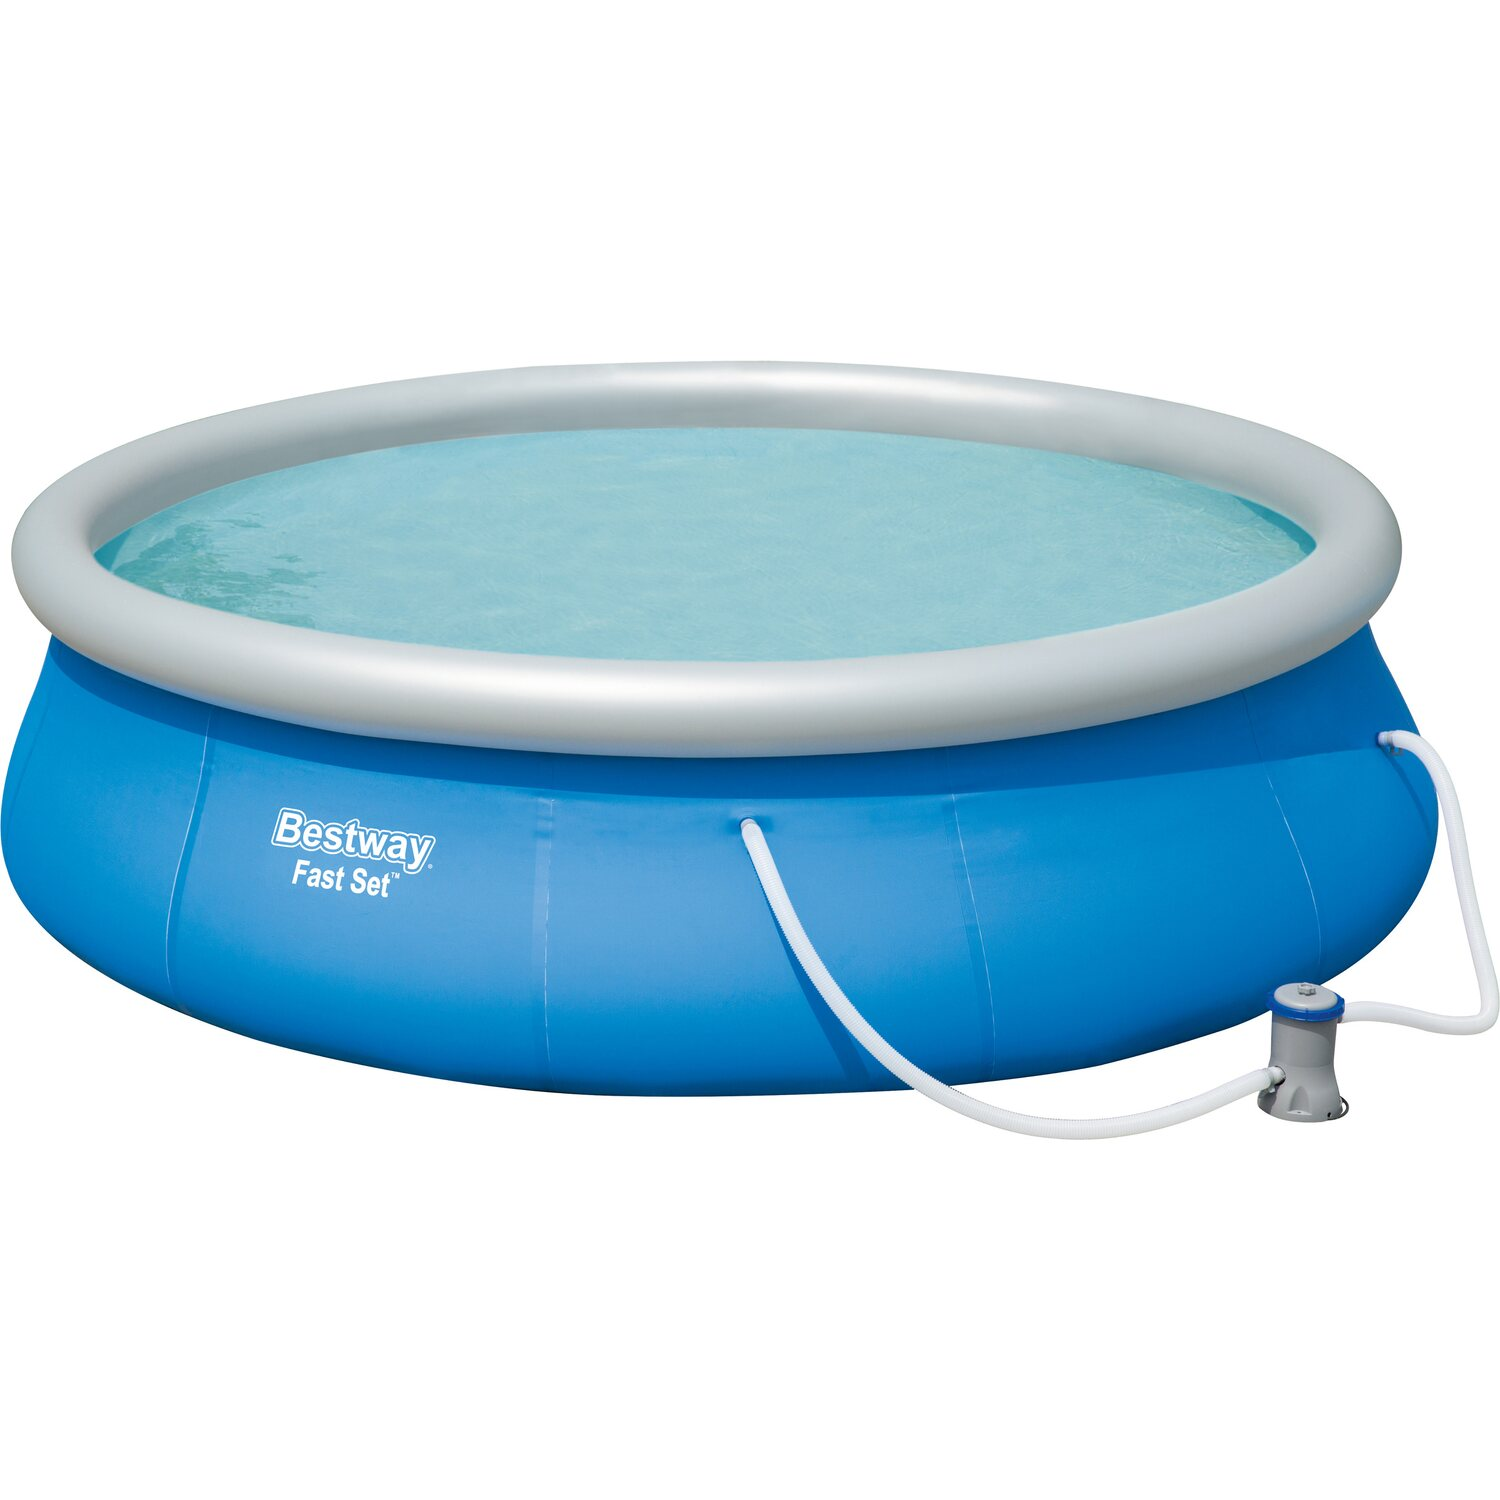 Bestway swimmingpool fast set 396 cm x 84 cm kaufen bei obi for Bestway pool obi